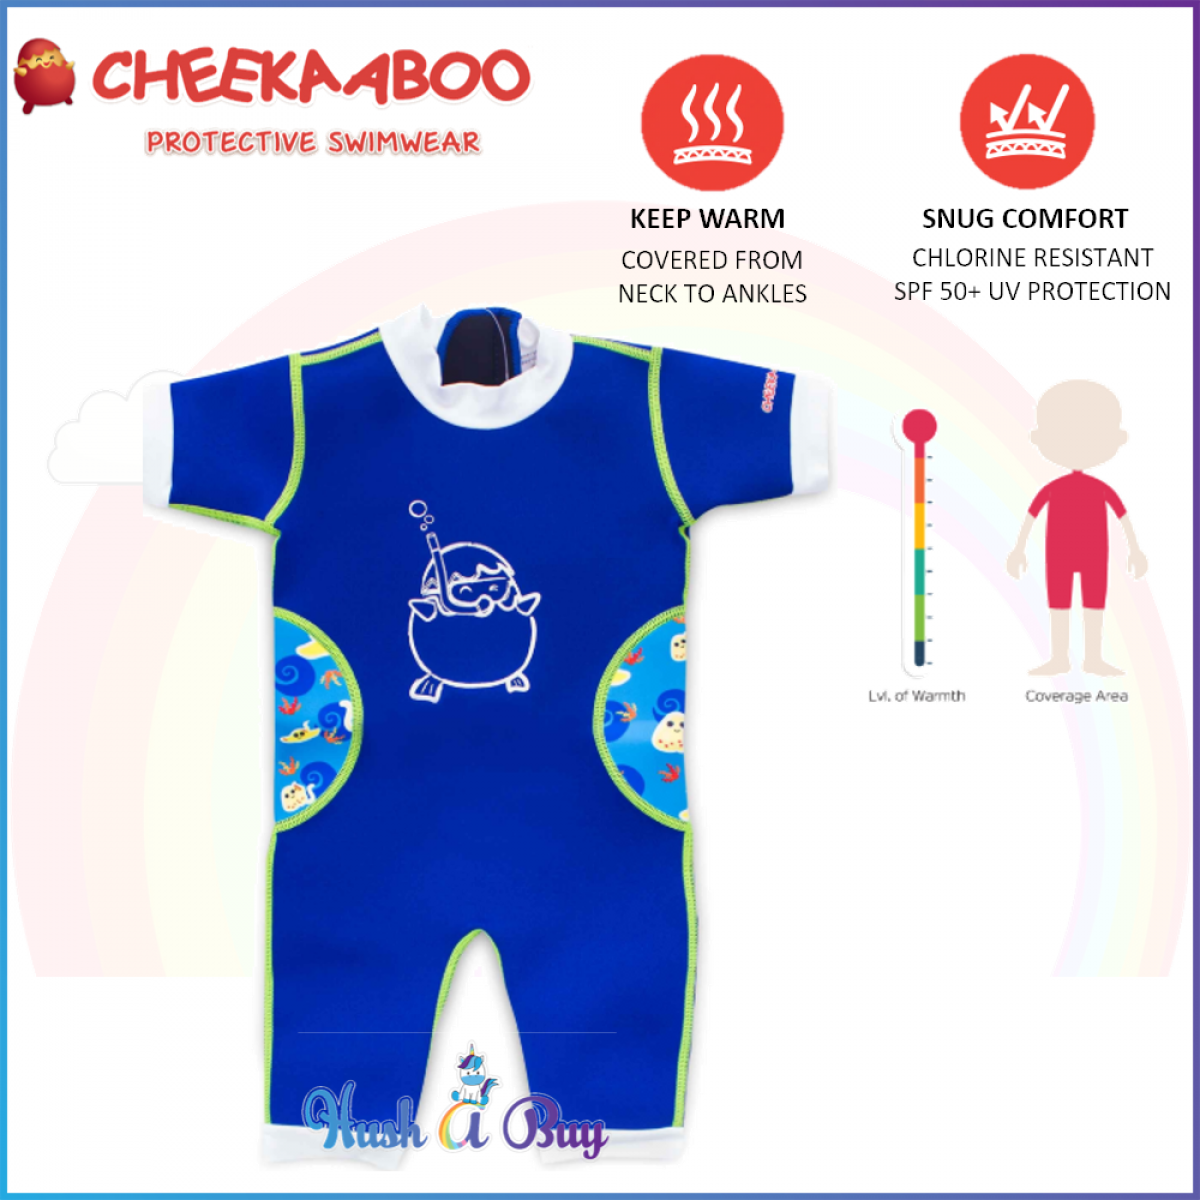 Cheekaaboo Warmiebabes Suit / Warmer / Swimming Suit - Navy Blue(Stingray)